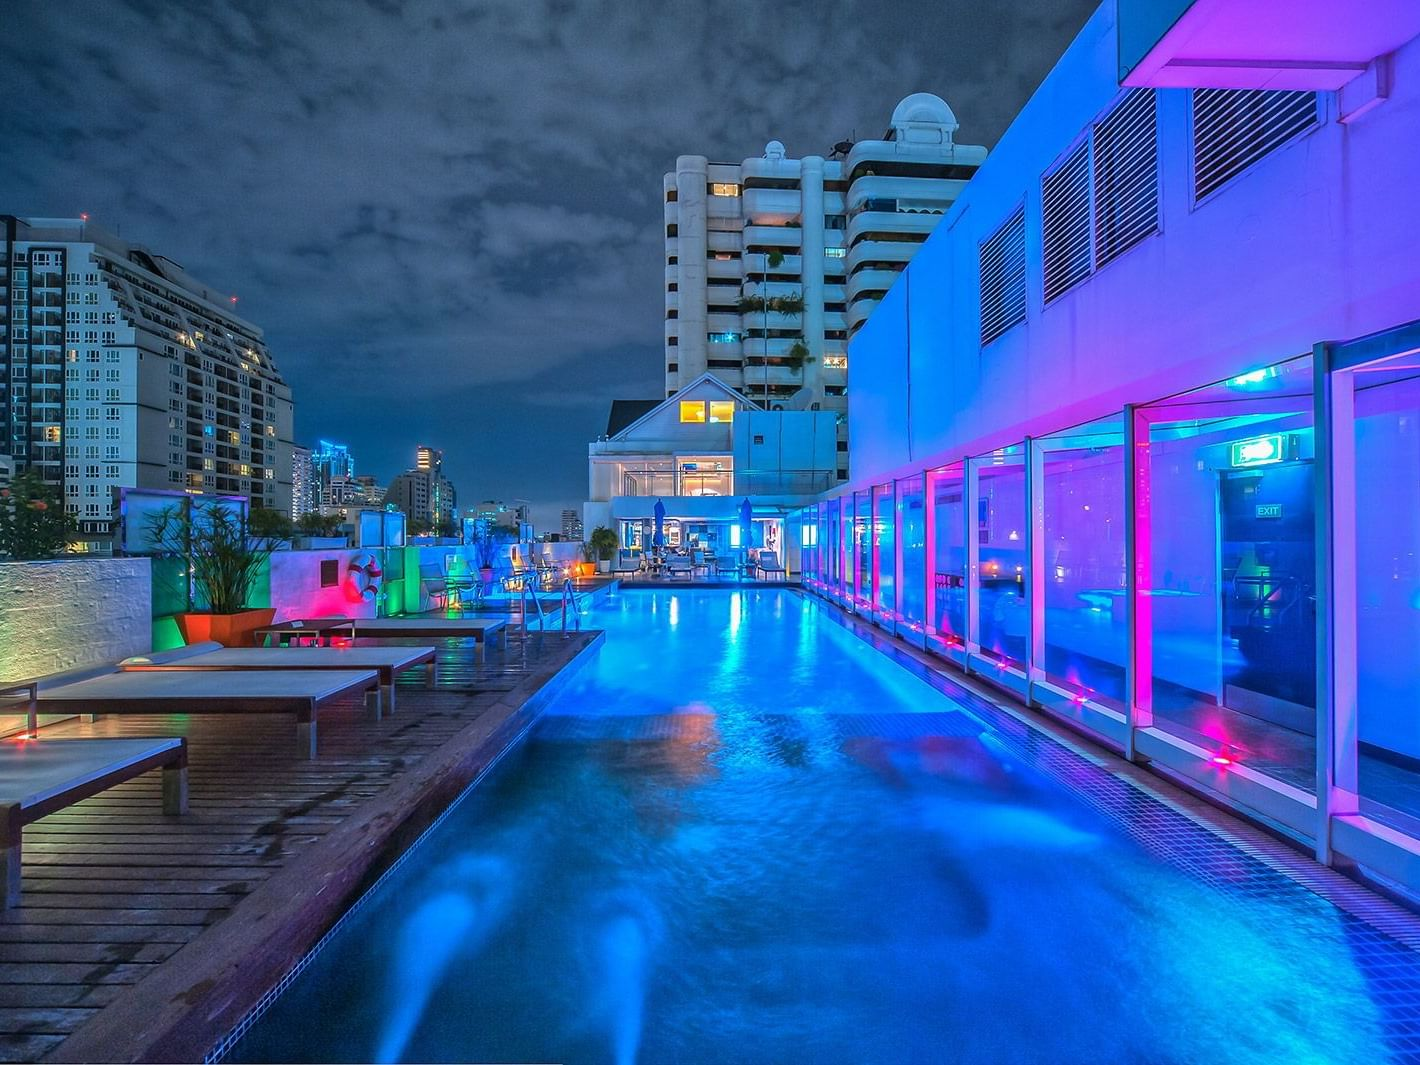 Roof top swimming pool view with pool chairs at Dream Bangkok